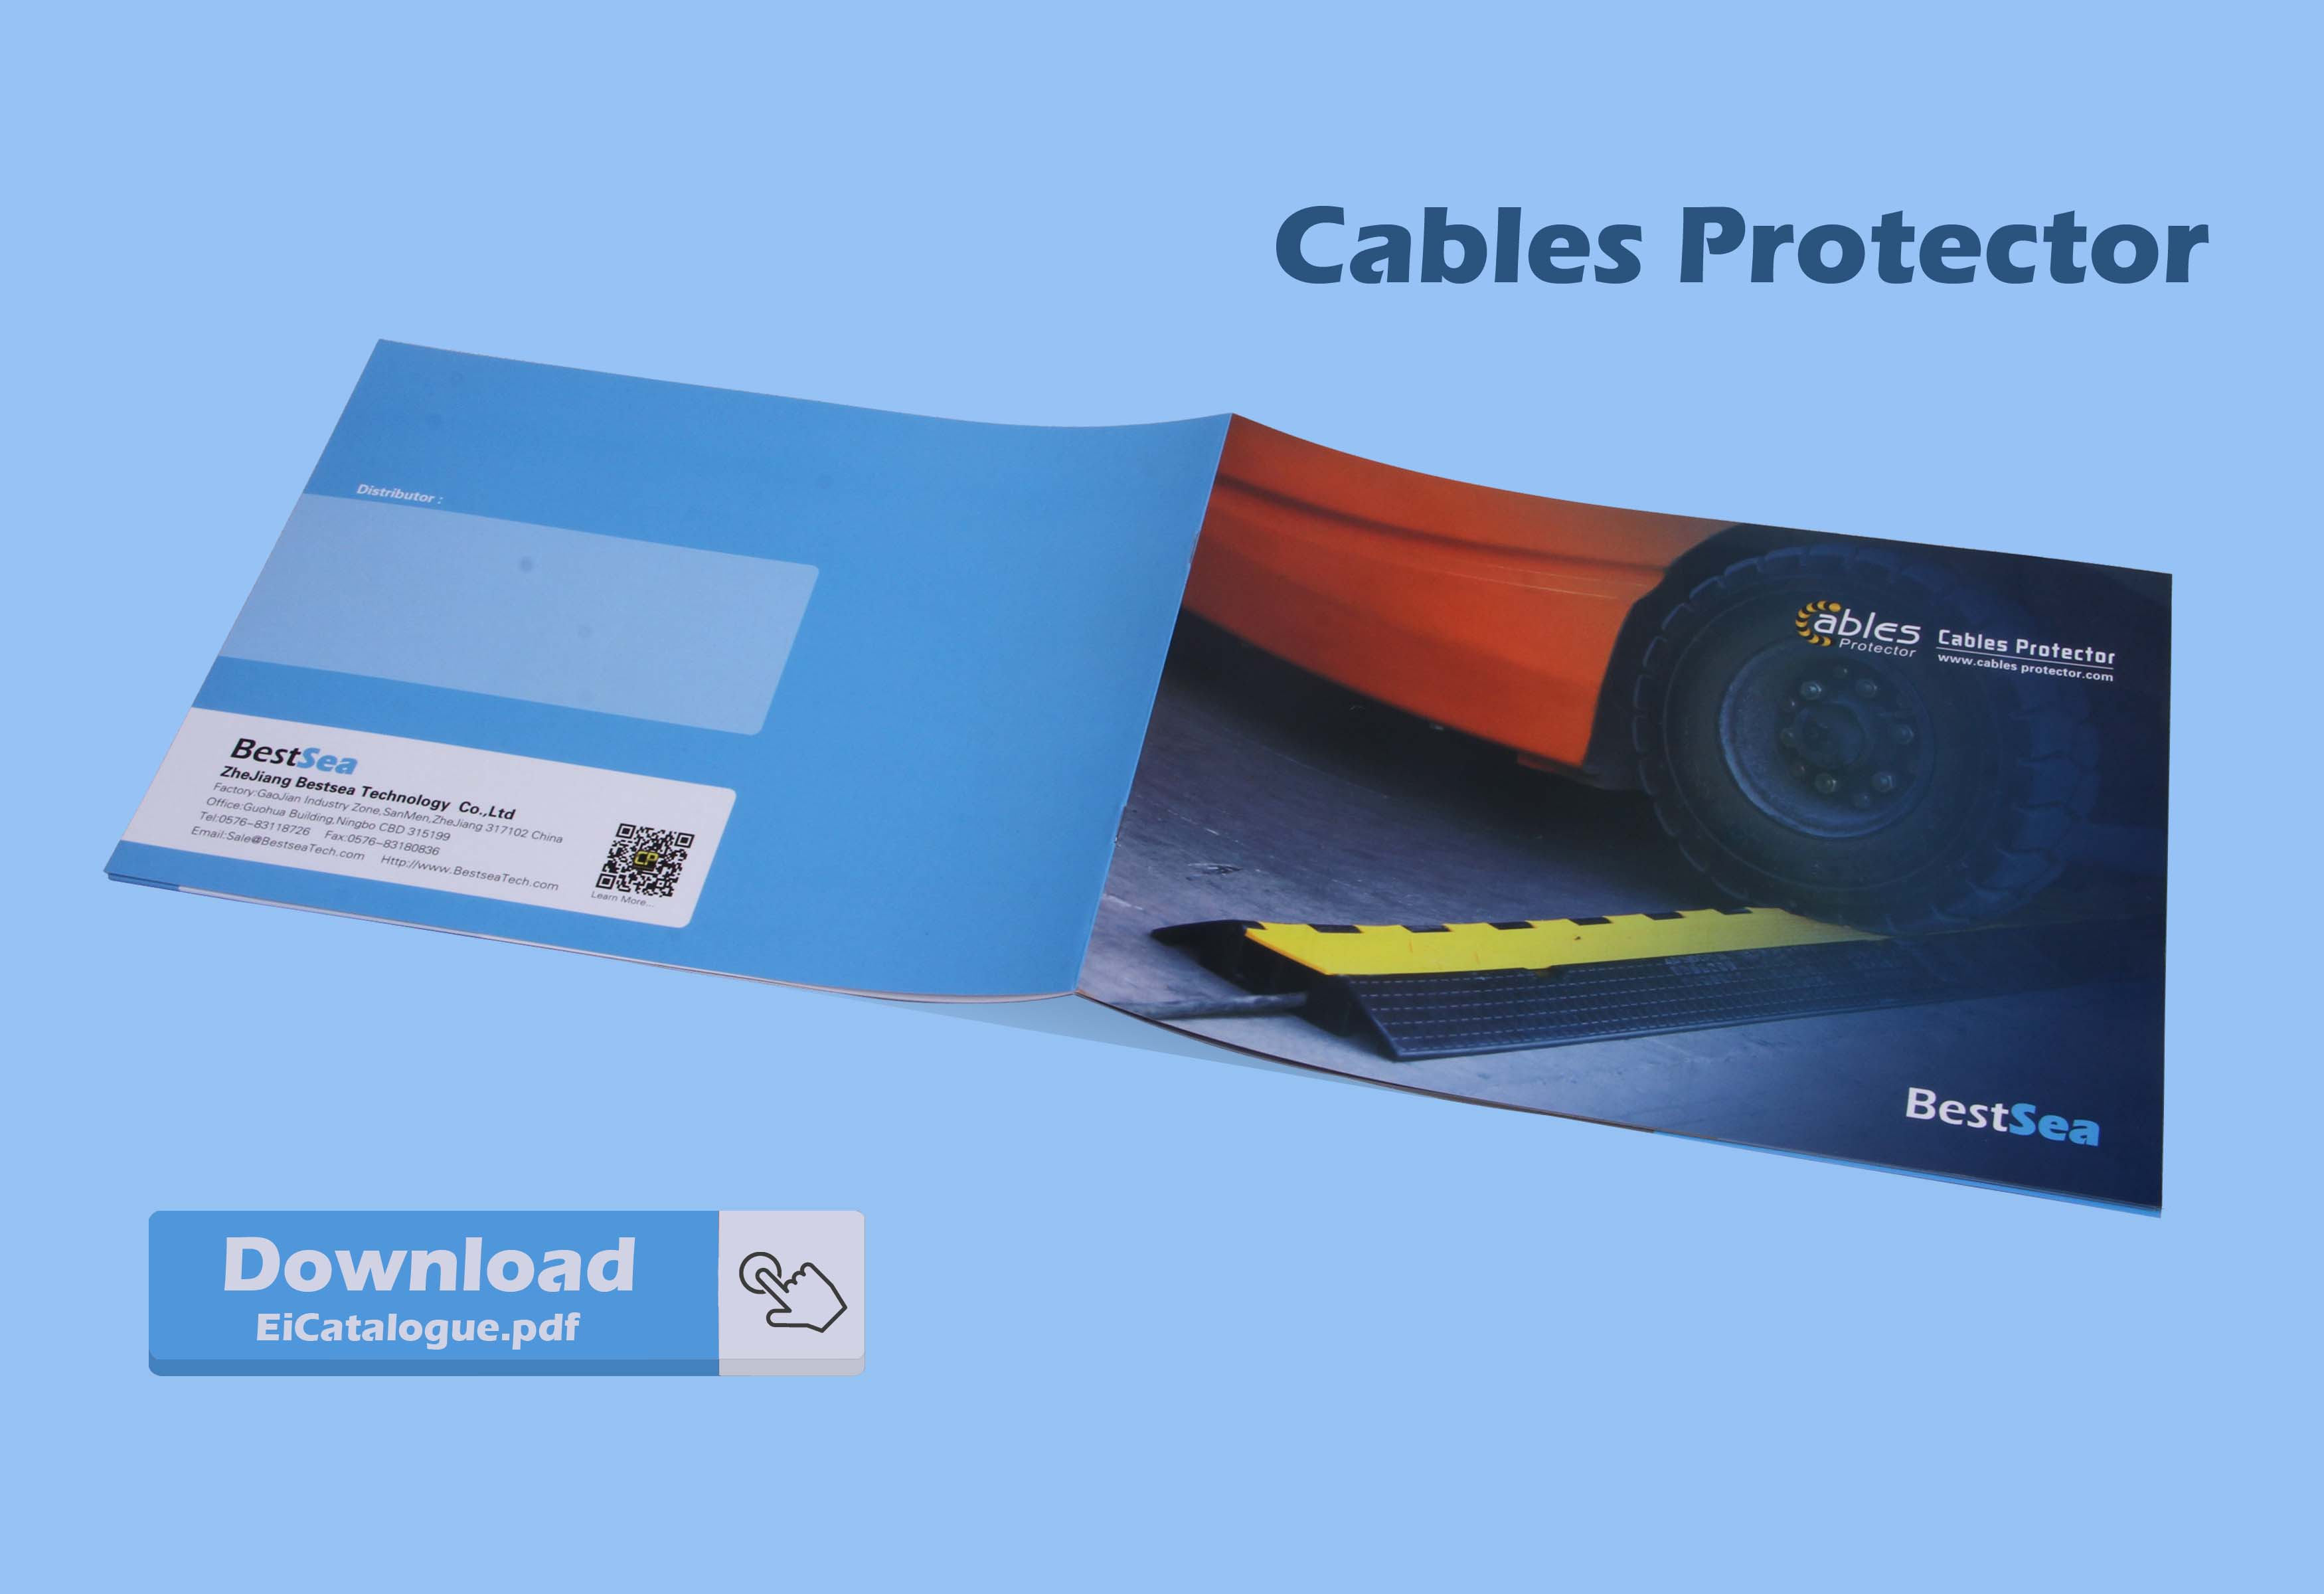 Cables protector